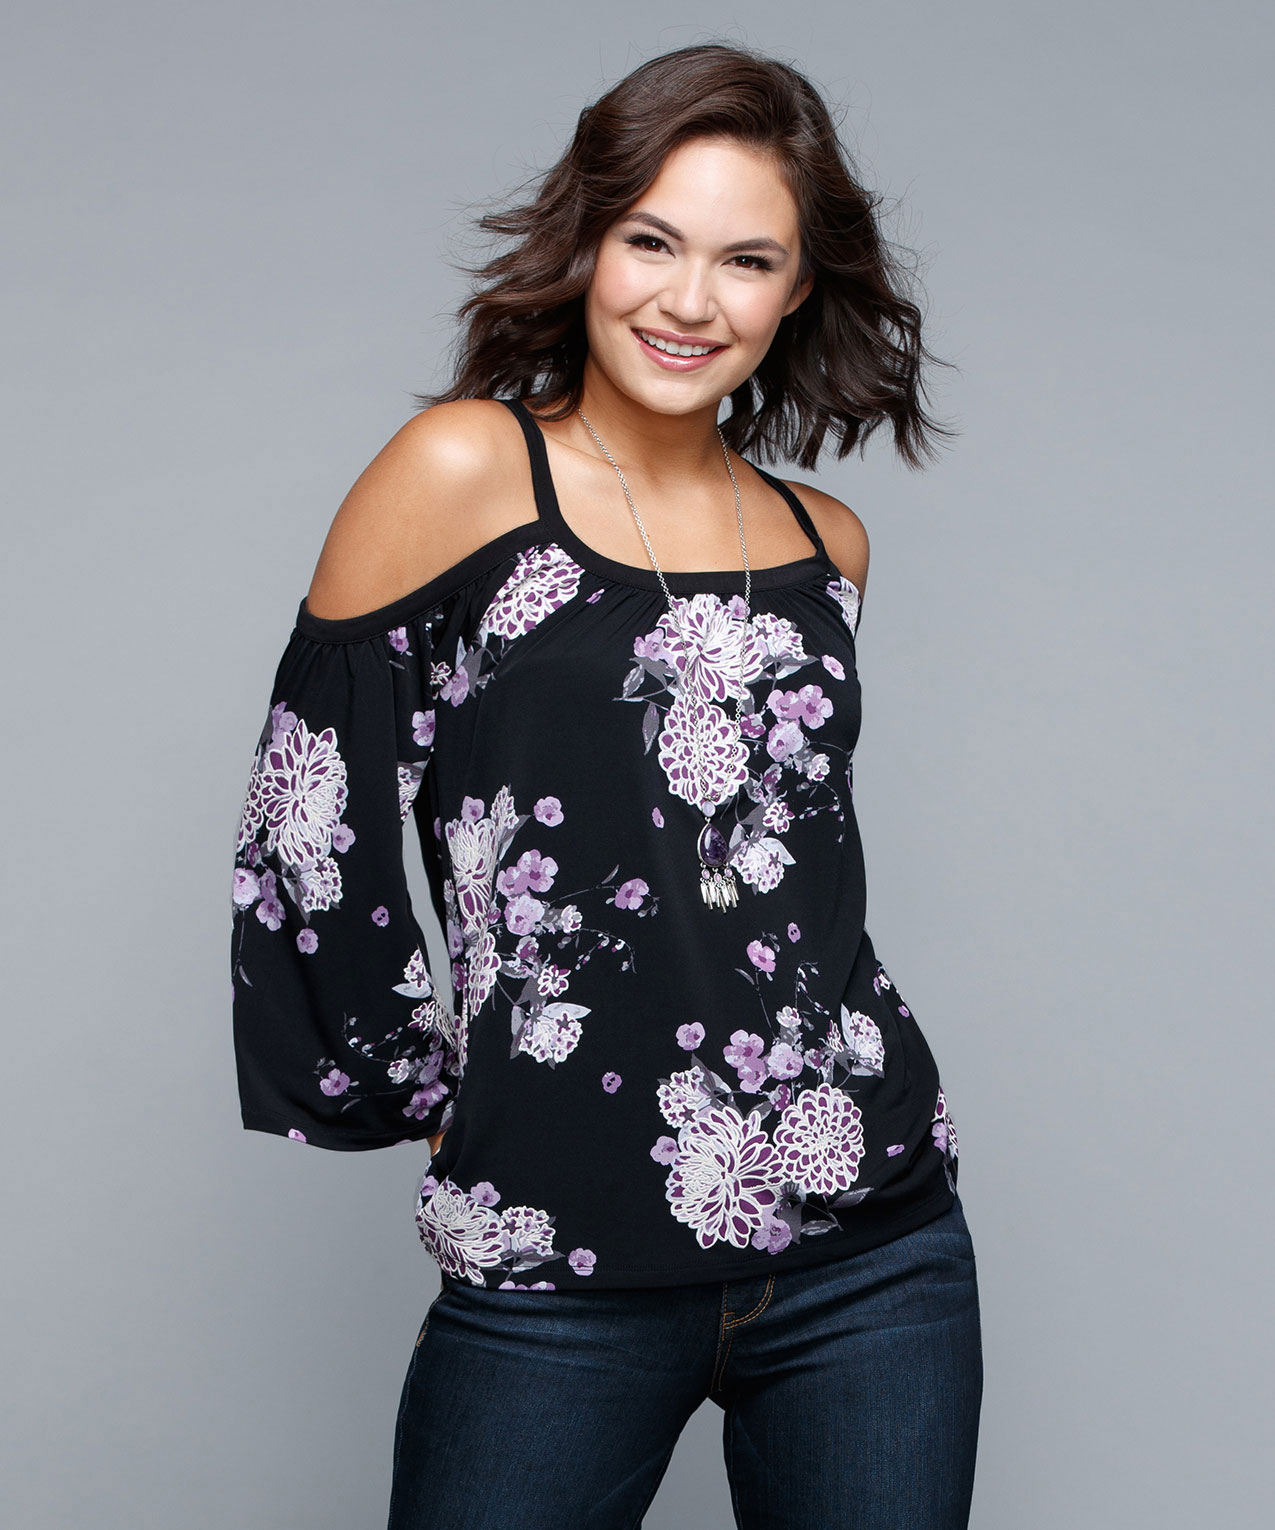 95fbb1075dfa03 ... Puff Print Cold Shoulder Top